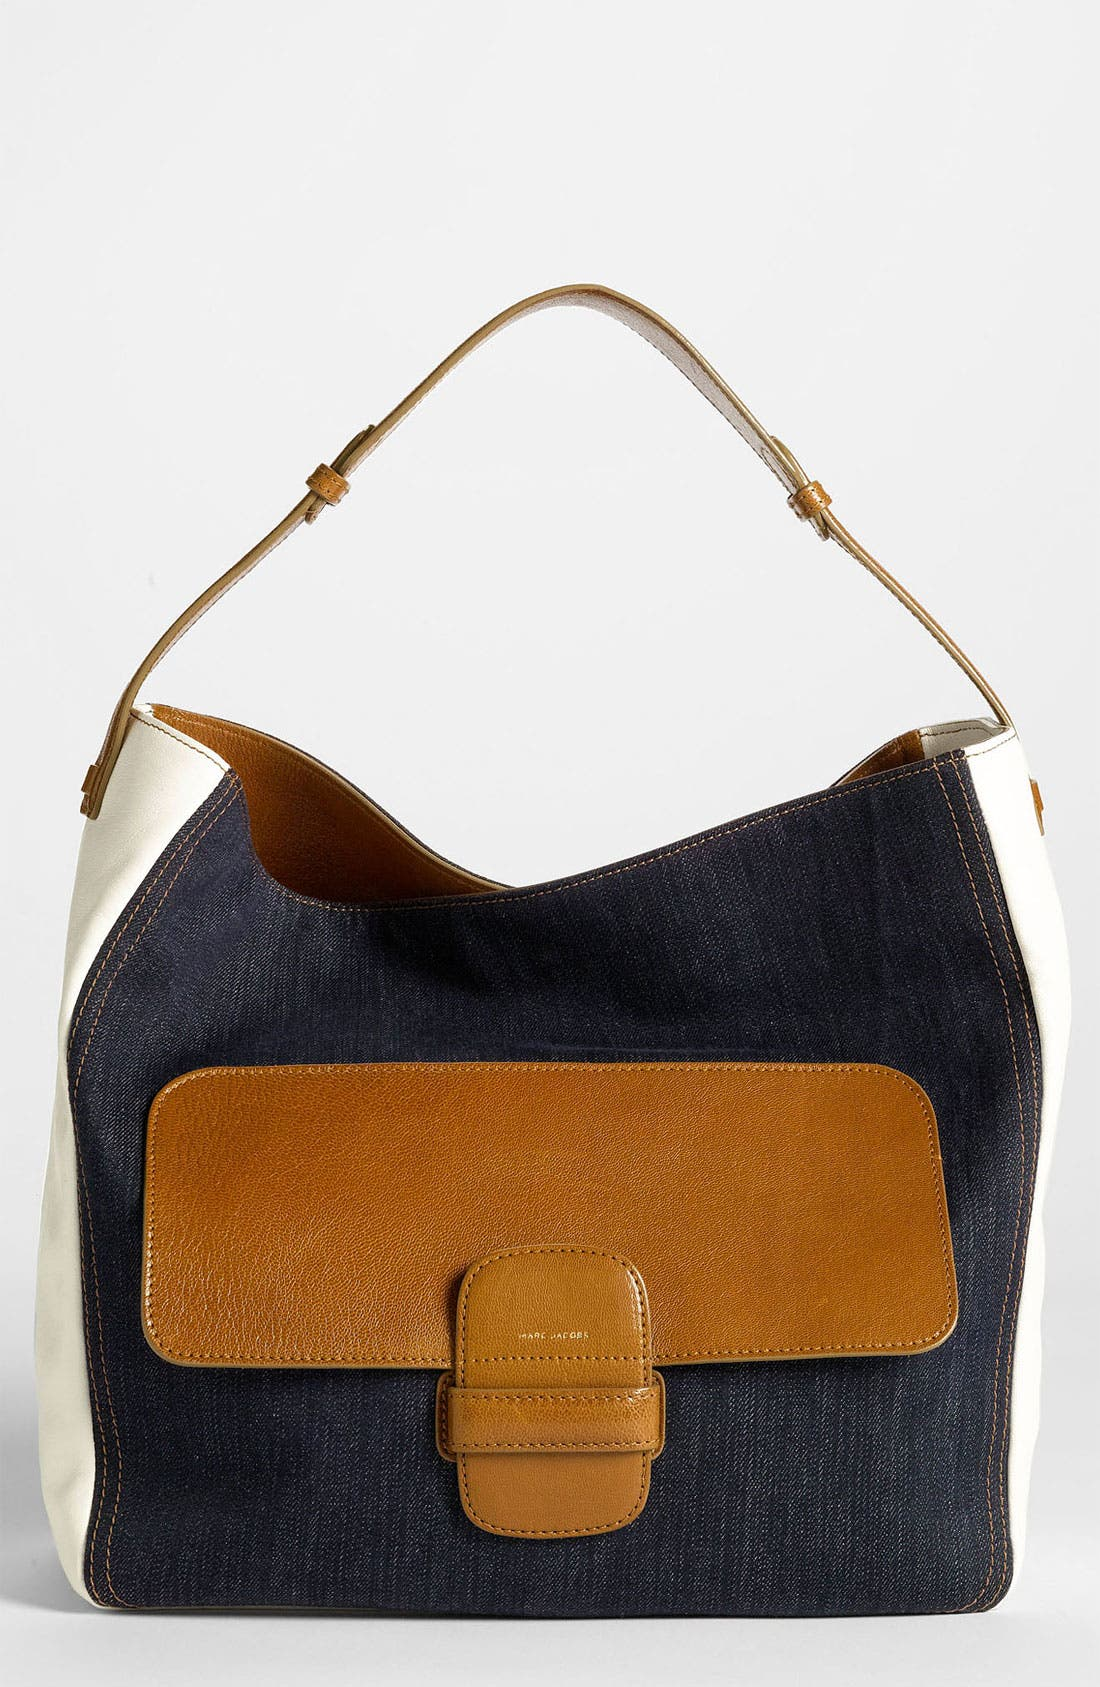 Main Image - MARC JACOBS Denim & Leather Hobo